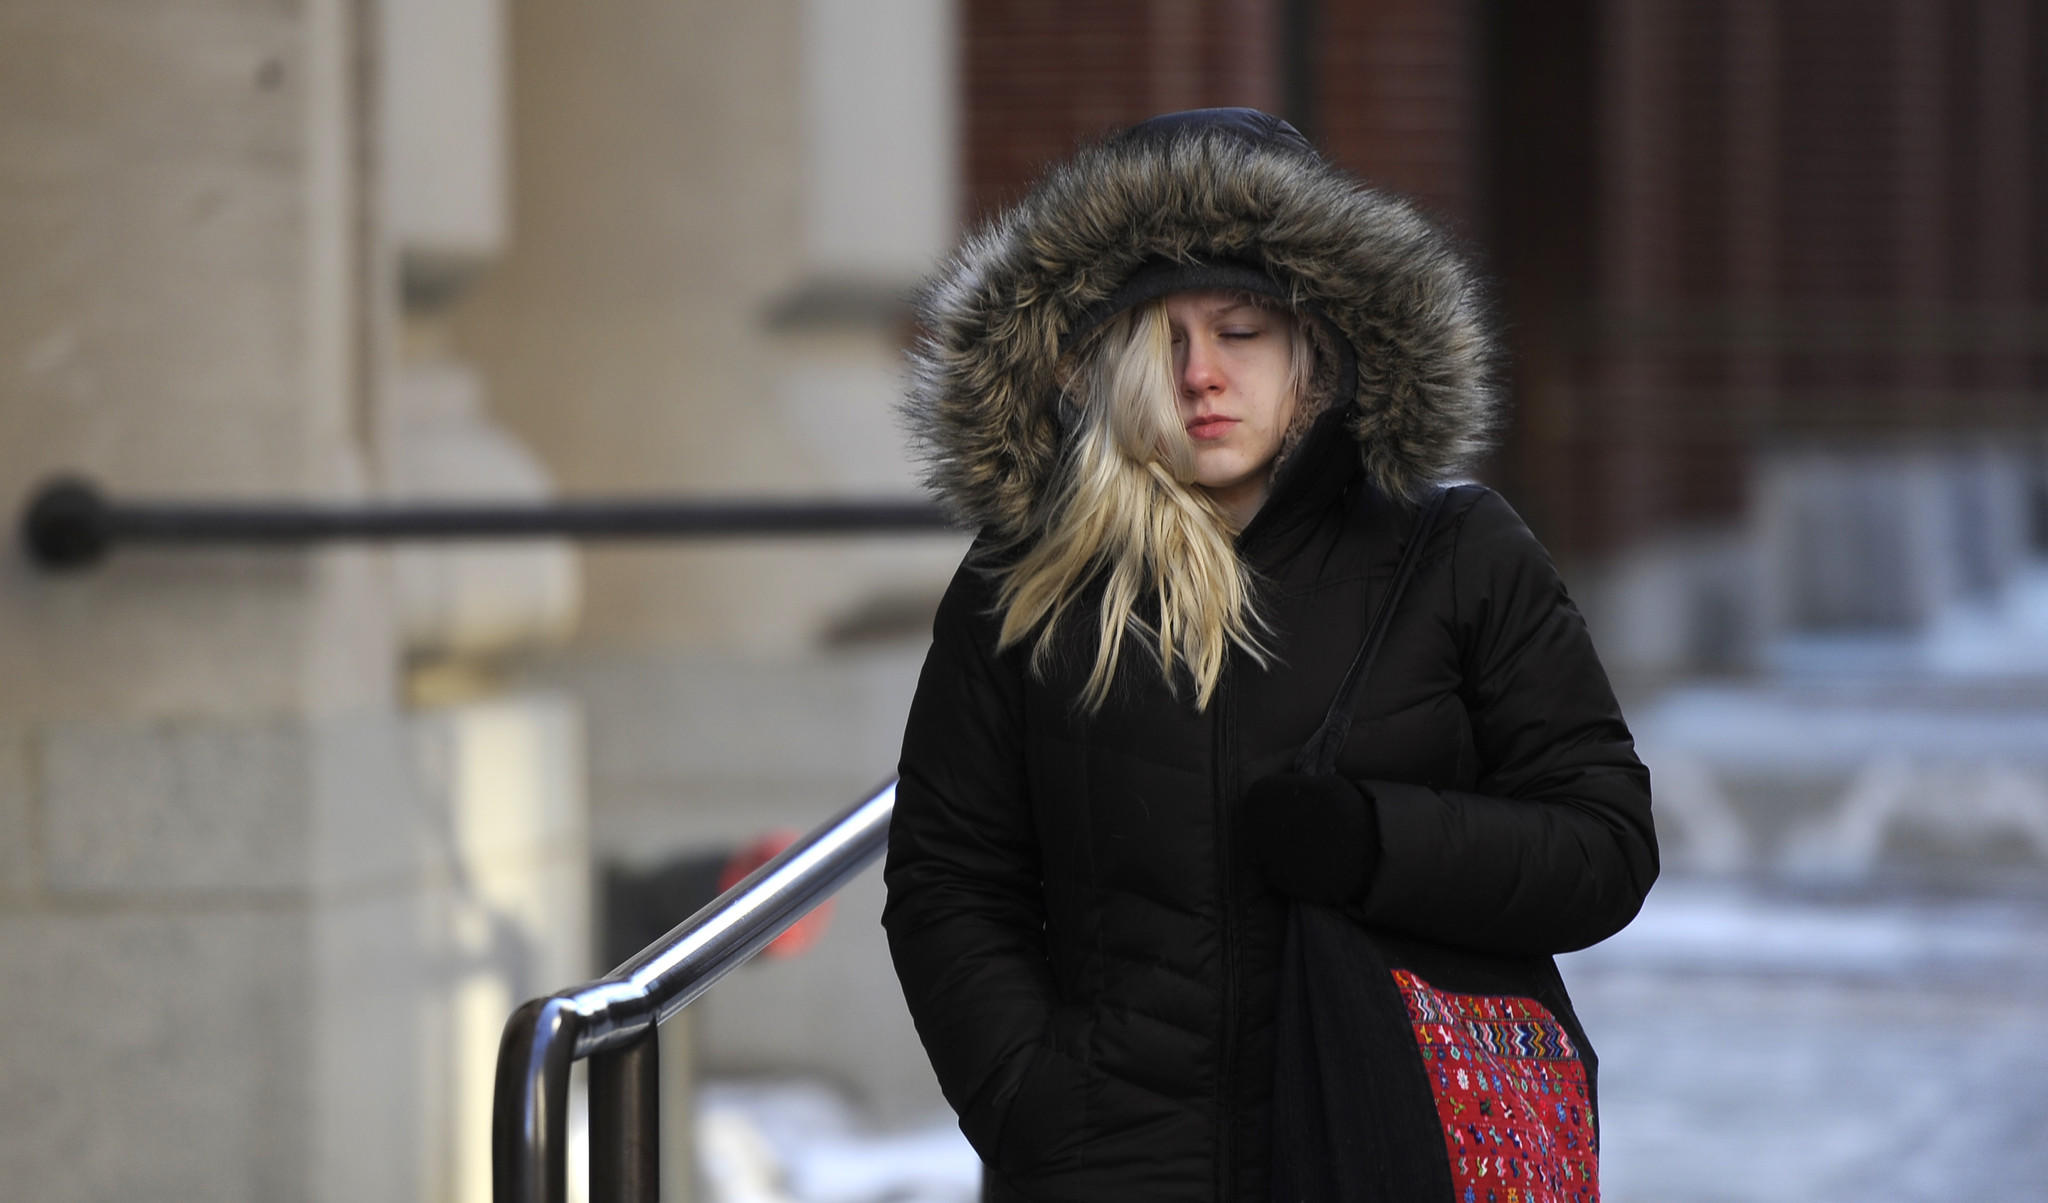 Andrea Janofsky of Baltimore is bundled up as she walks to work along Redwood Street downtown.